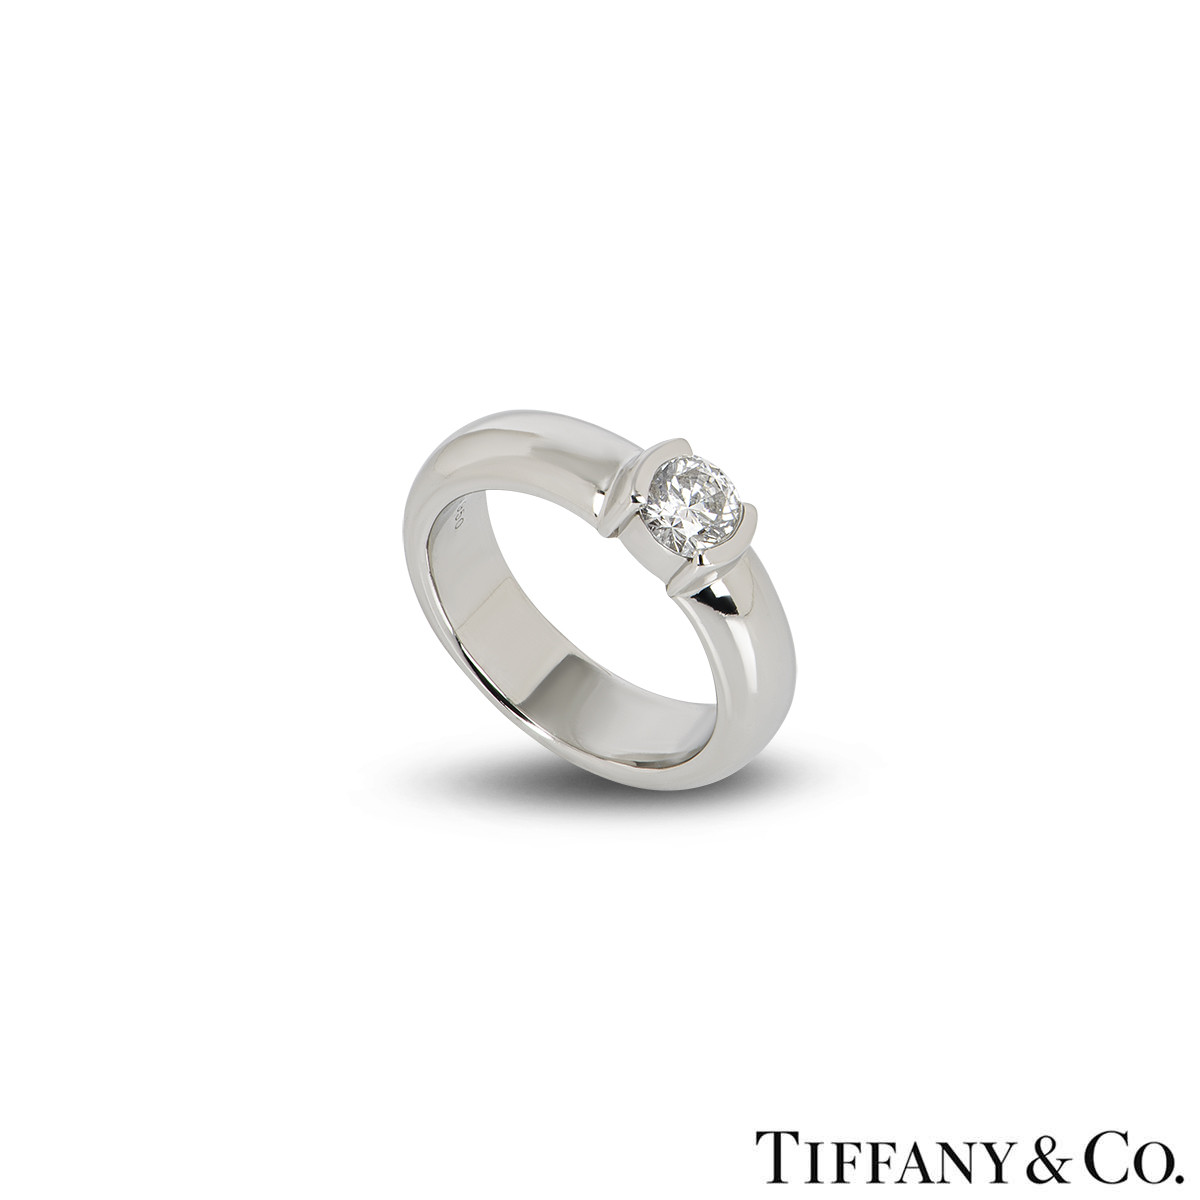 Tiffany & Co. Diamond Etoile Platinum Ring 0.50ct F/VS1